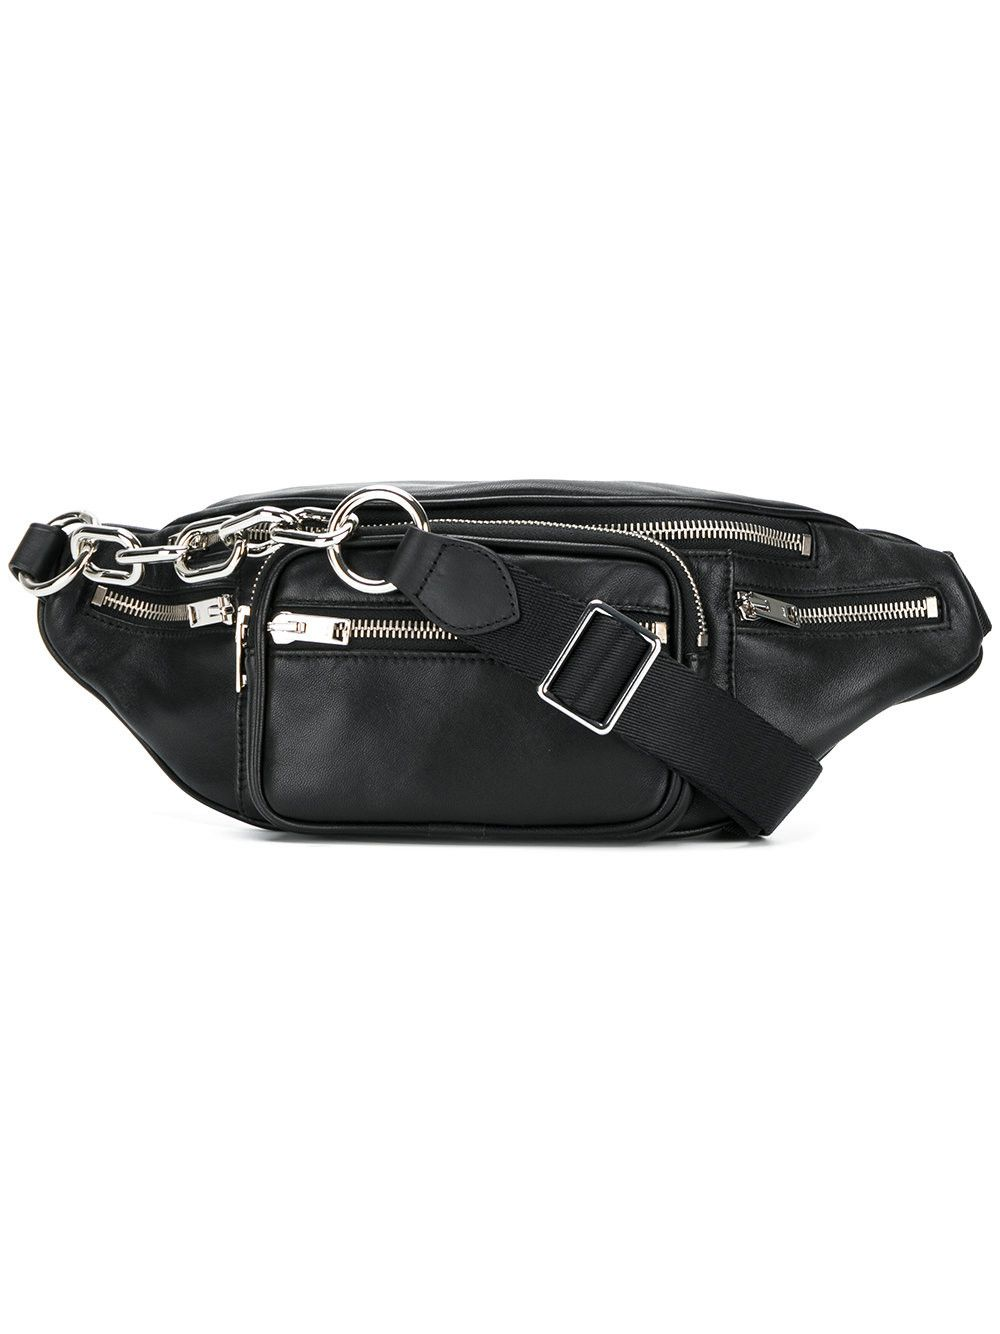 8240e84f83a ALEXANDER WANG attica belt bag.  alexanderwang  bags  leather  belt bags